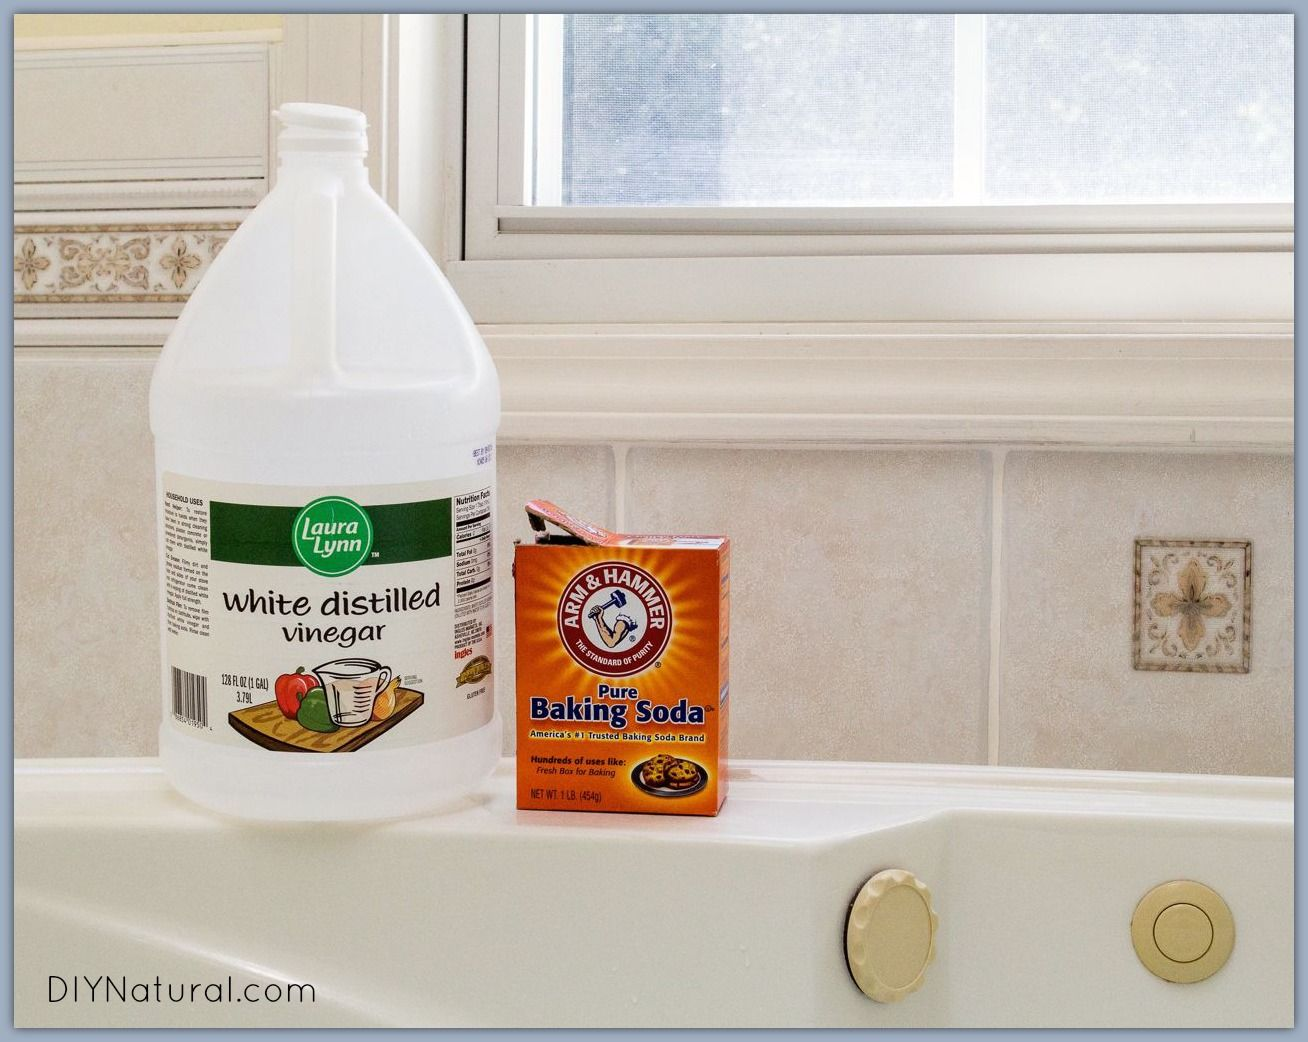 How to Clean a Jetted Tub Naturally | Pinterest | Jetted tub, Tubs ...